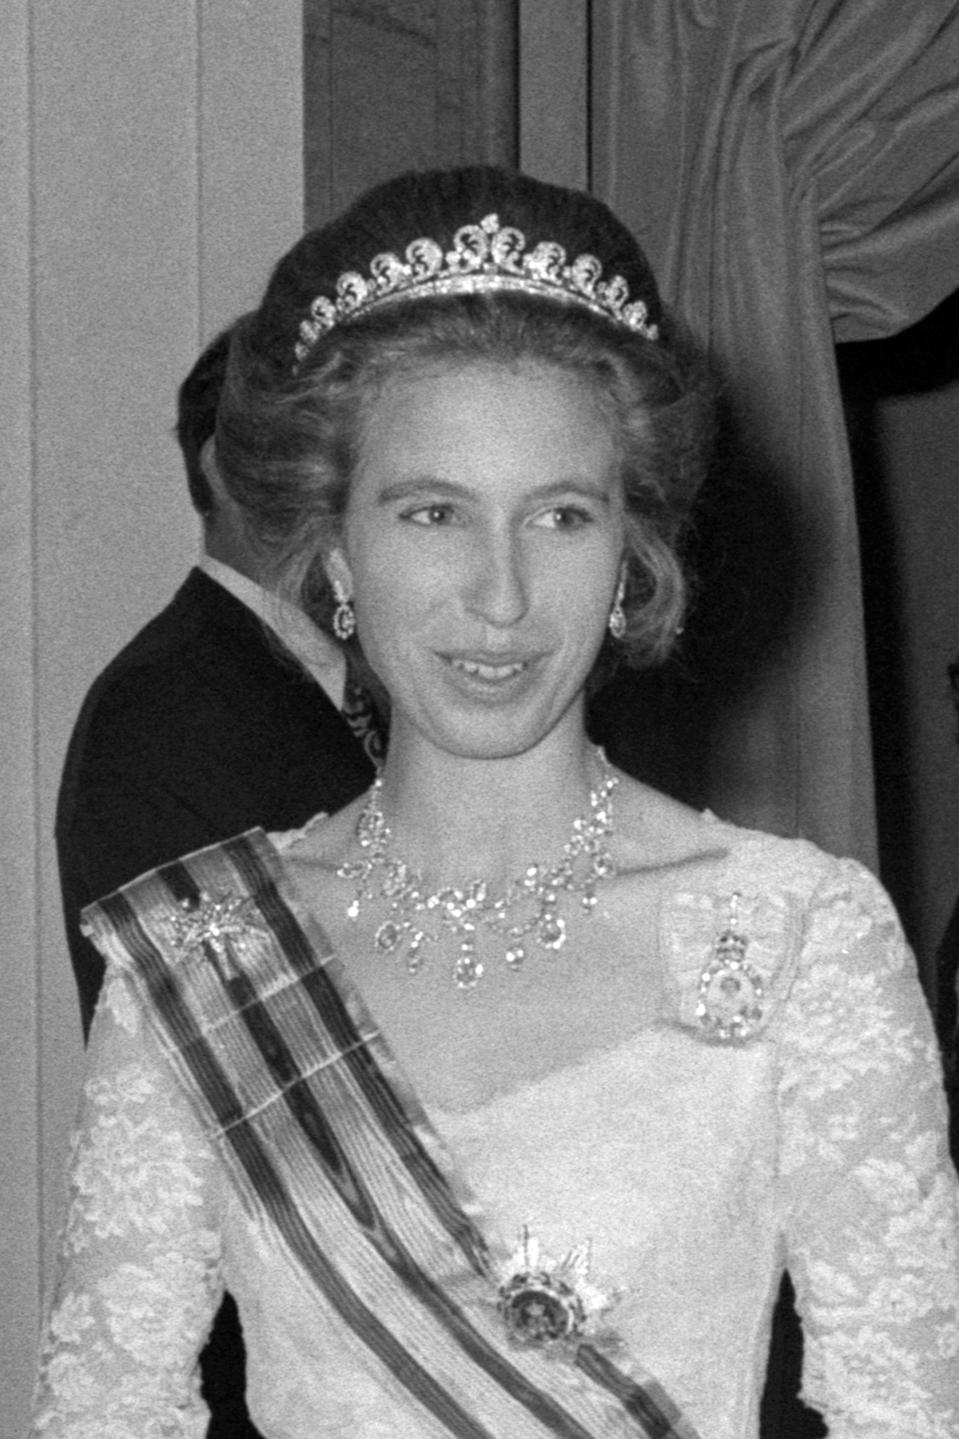 Princess Anne arrives at Claridge's for a banquet in 1969, stunning in a regal tiara and necklace, as well as a white gown, with a sash. (Getty Images)